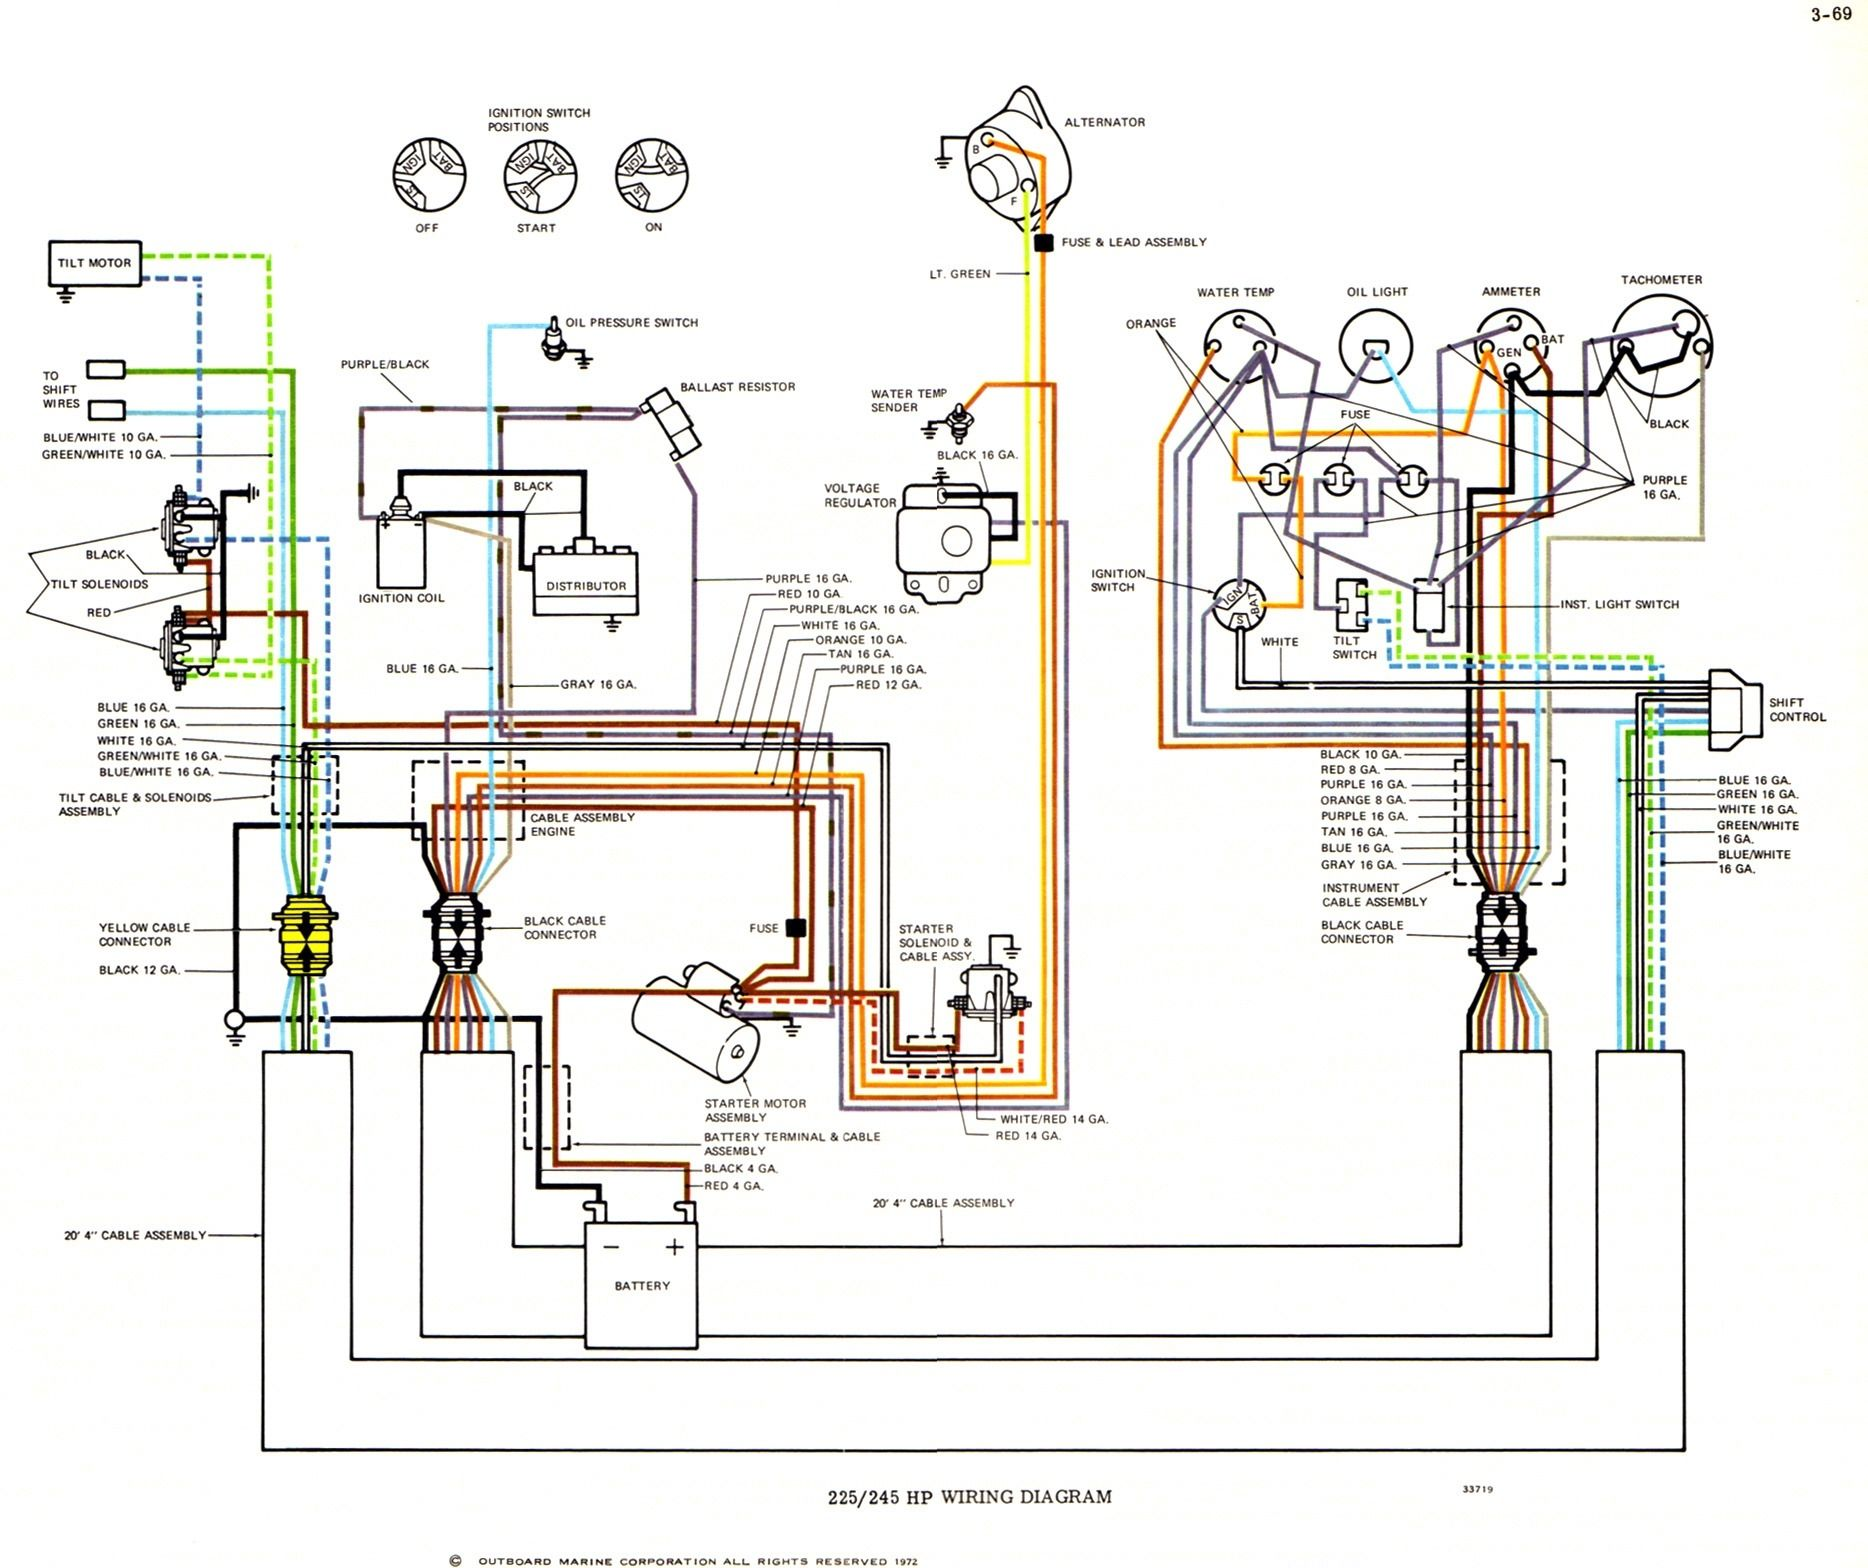 small resolution of yamaha boat wiring blog wiring diagram yamaha boat wiring schematic yamaha boat wiring diagram